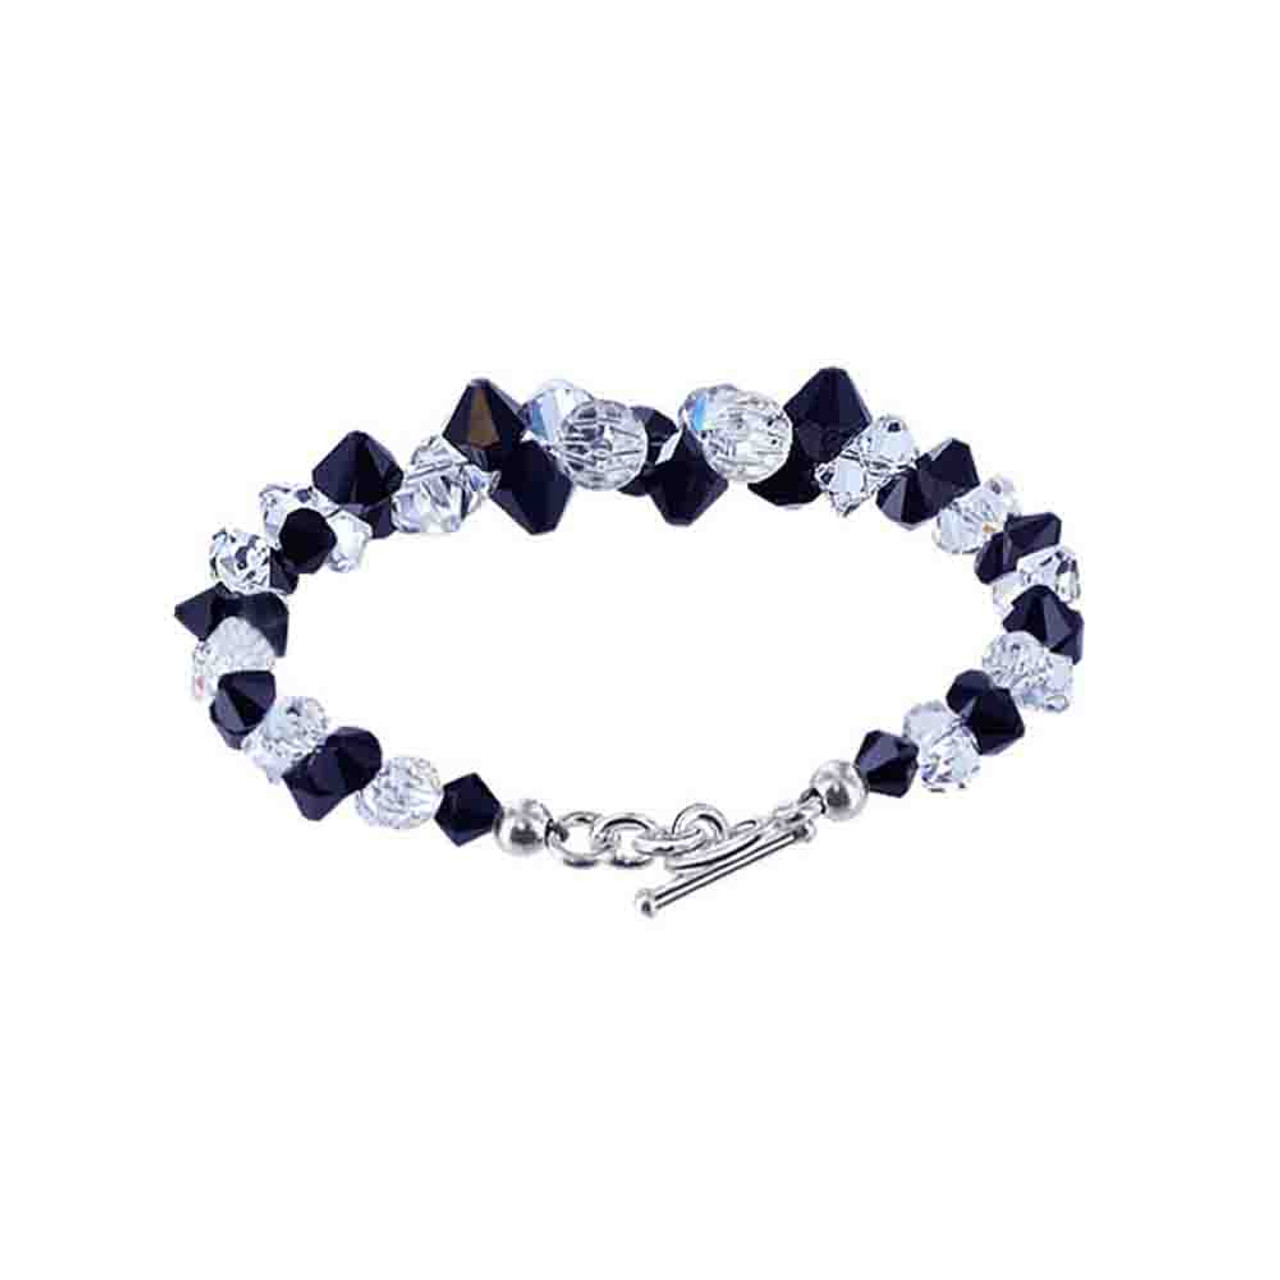 Cluster Style Swarovski Elements Black & Clear Crystal Bracelet